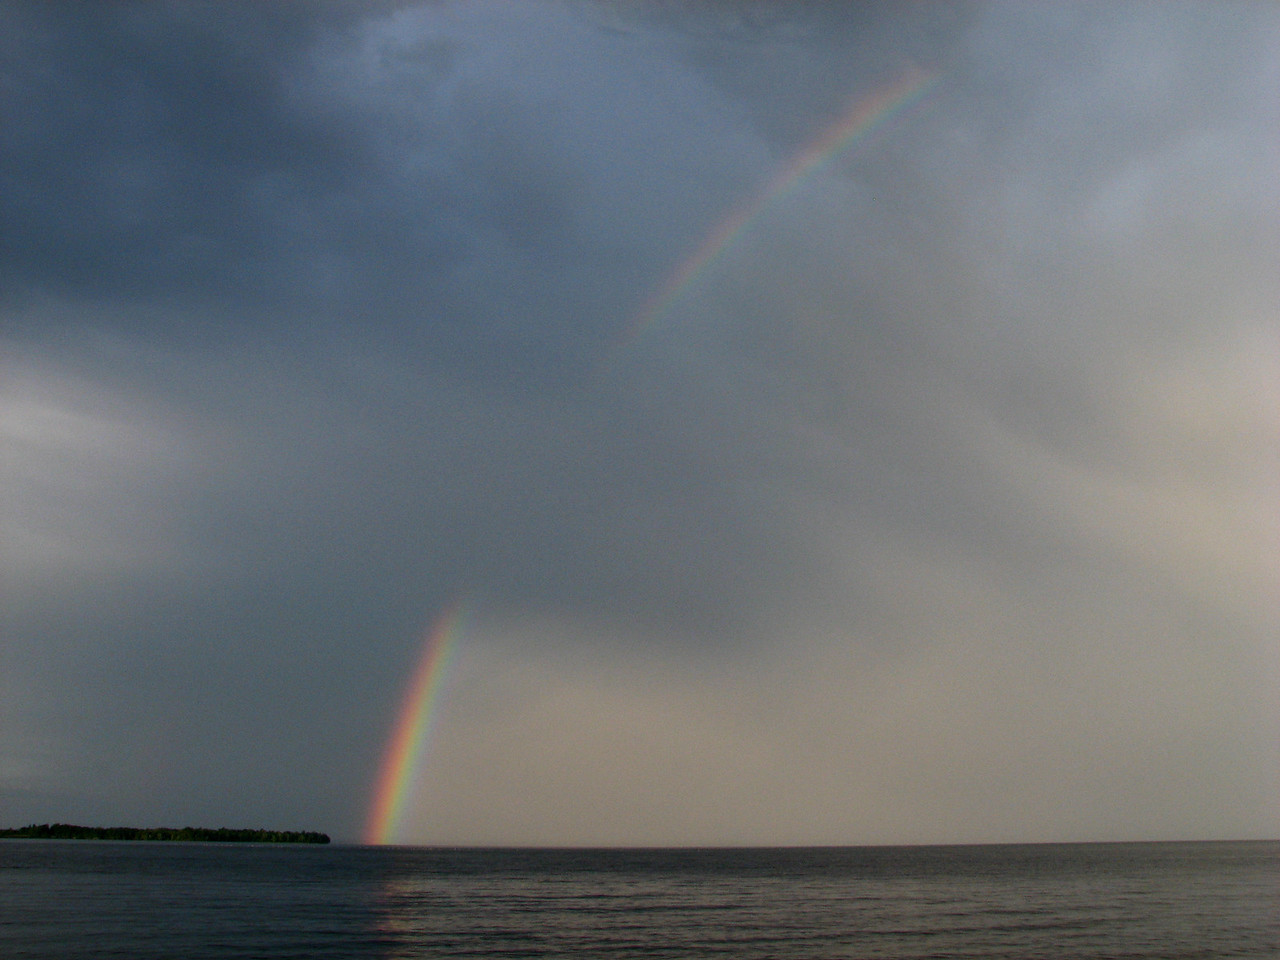 Intense rainbow touching near the south end of Schuyler Island, Lake Champlain